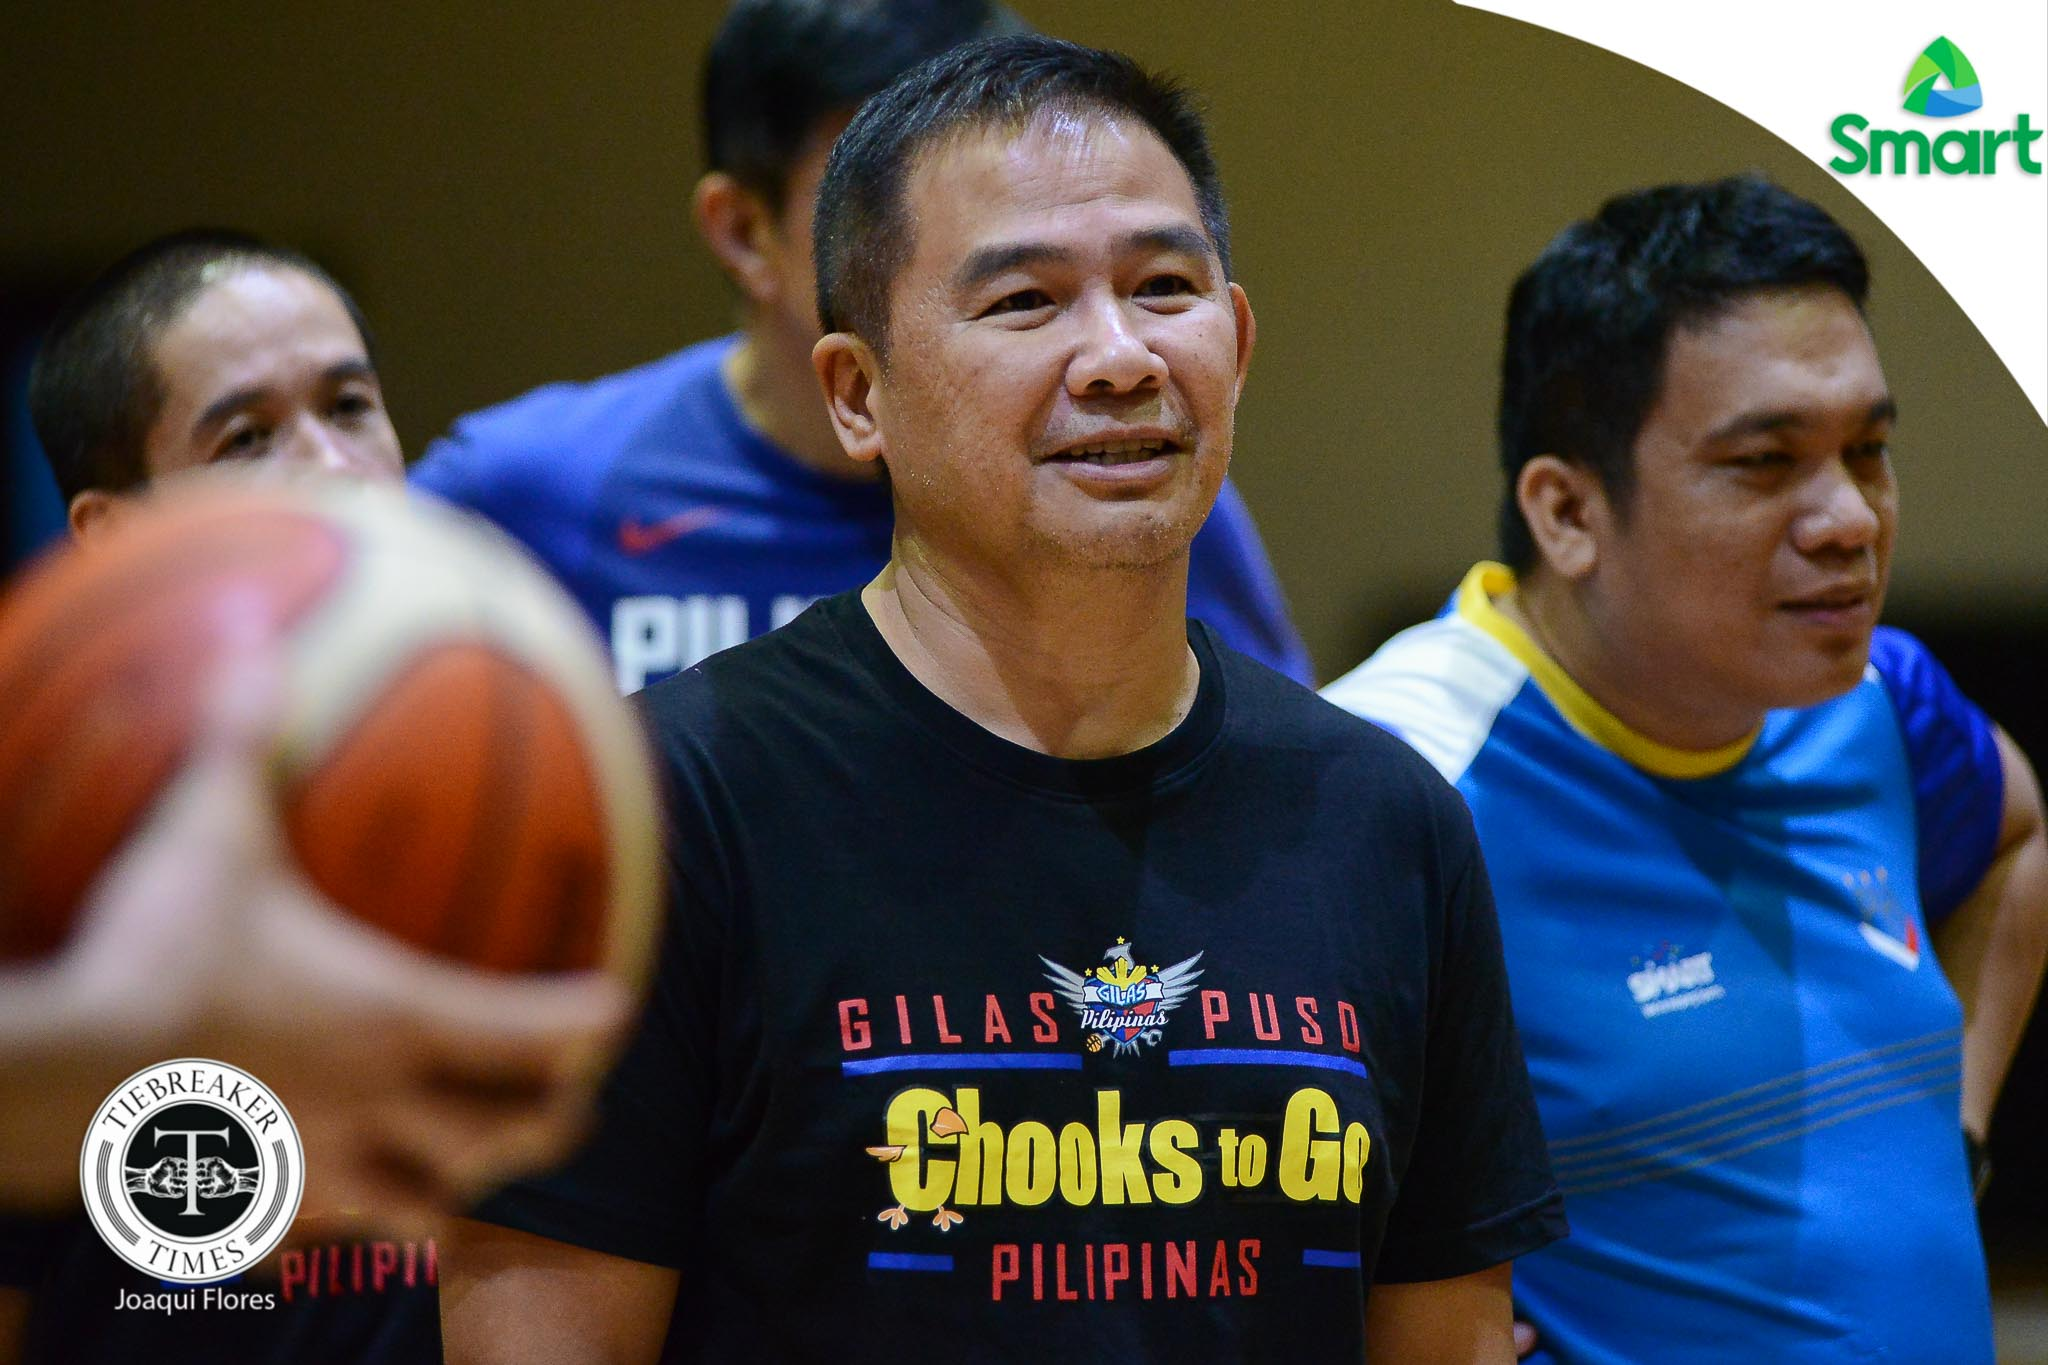 Philippine Sports News - Tiebreaker Times Chot Reyes glad to see Andray Blatche arrive in shape 2019 FIBA World Cup Qualifiers Basketball Gilas Pilipinas News  Chot Reyes Andray Blatche 2019 FIBA World Cup Qualifiers Group B